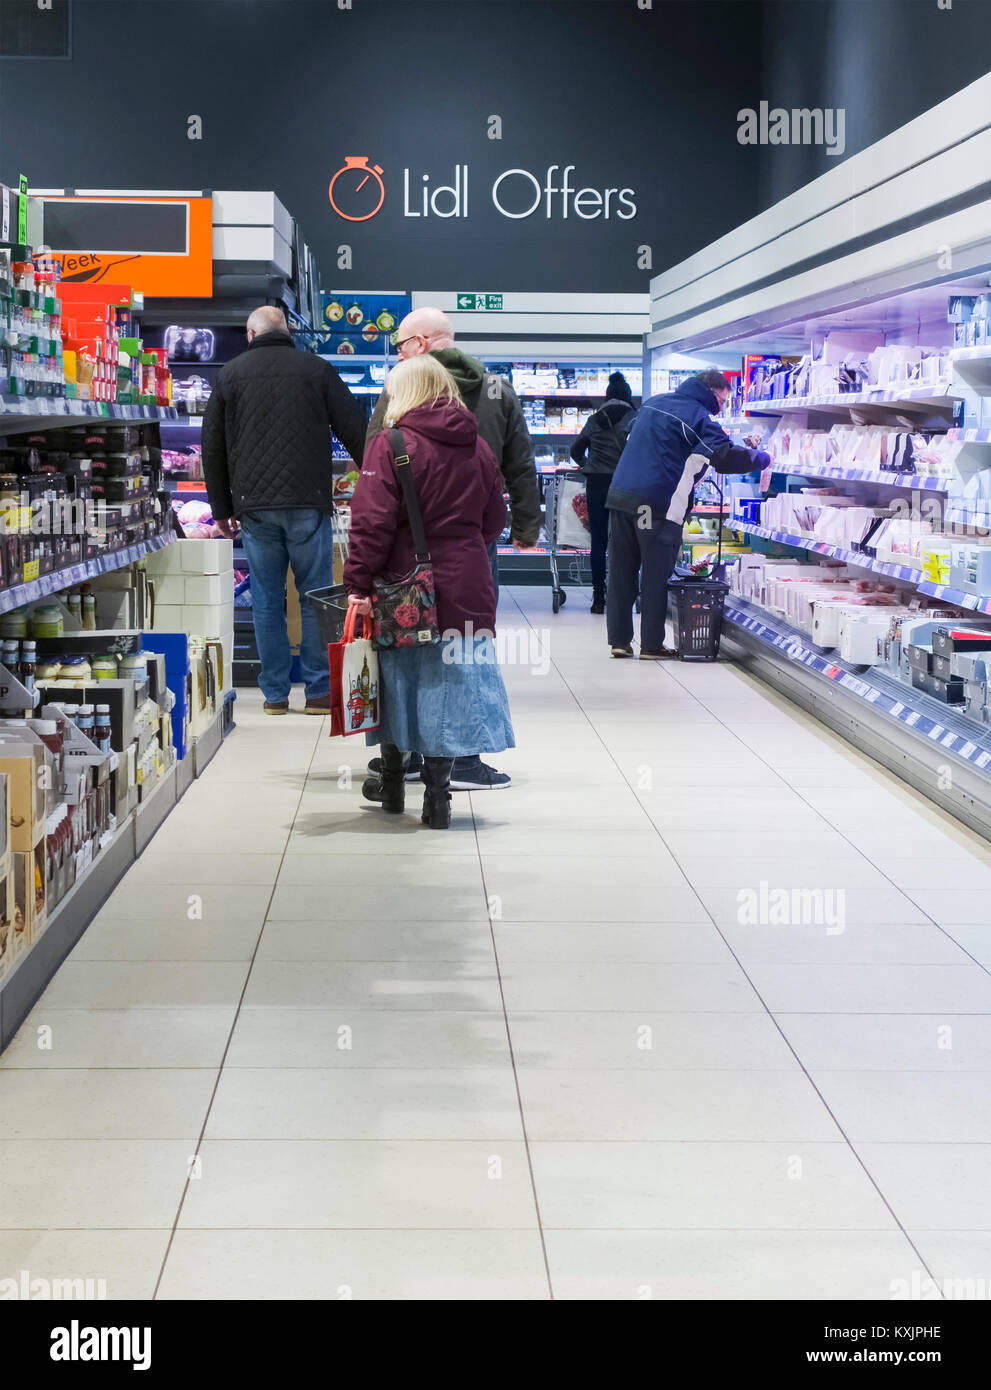 Interior of Lidl supermarket in the UK showing aisles and customers choosing goods and produce. - Stock Image